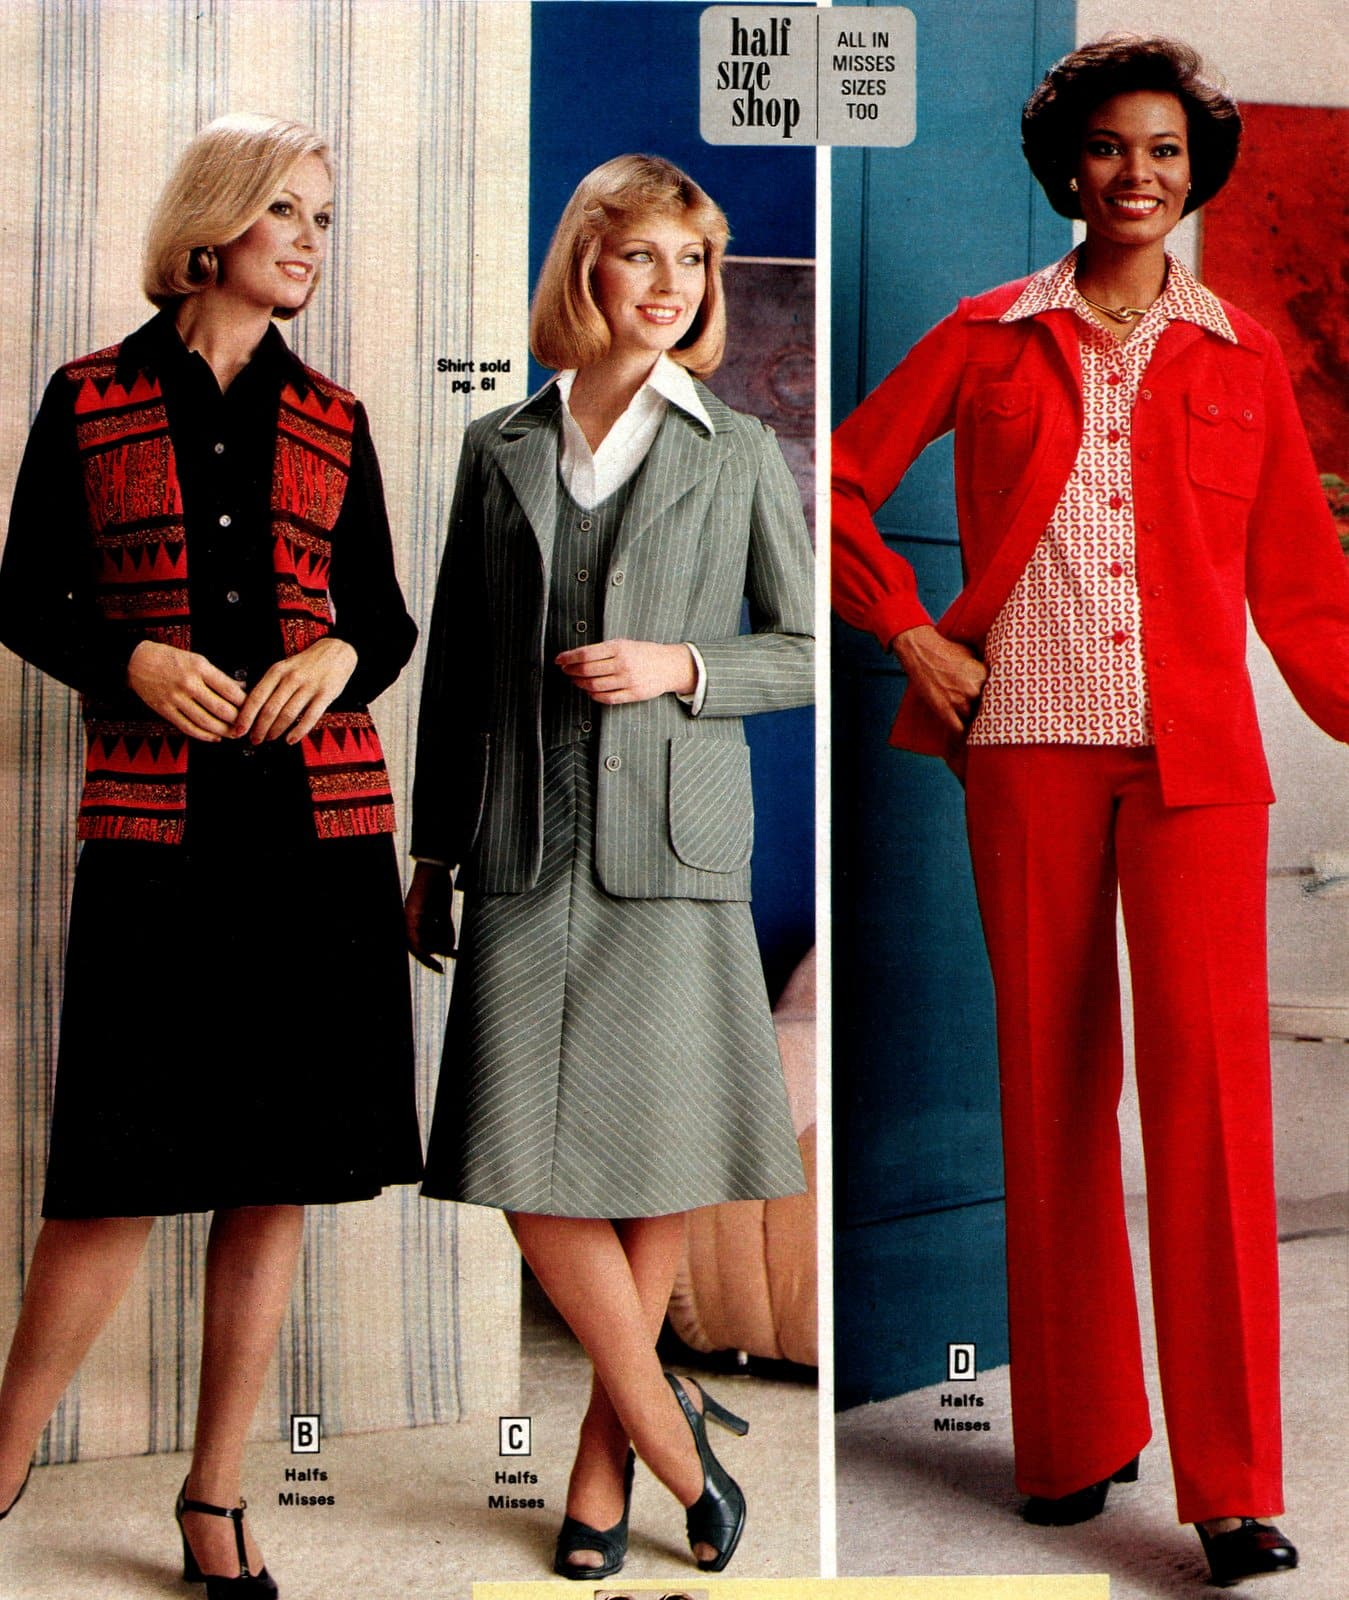 Retro suits for women from the 1970s